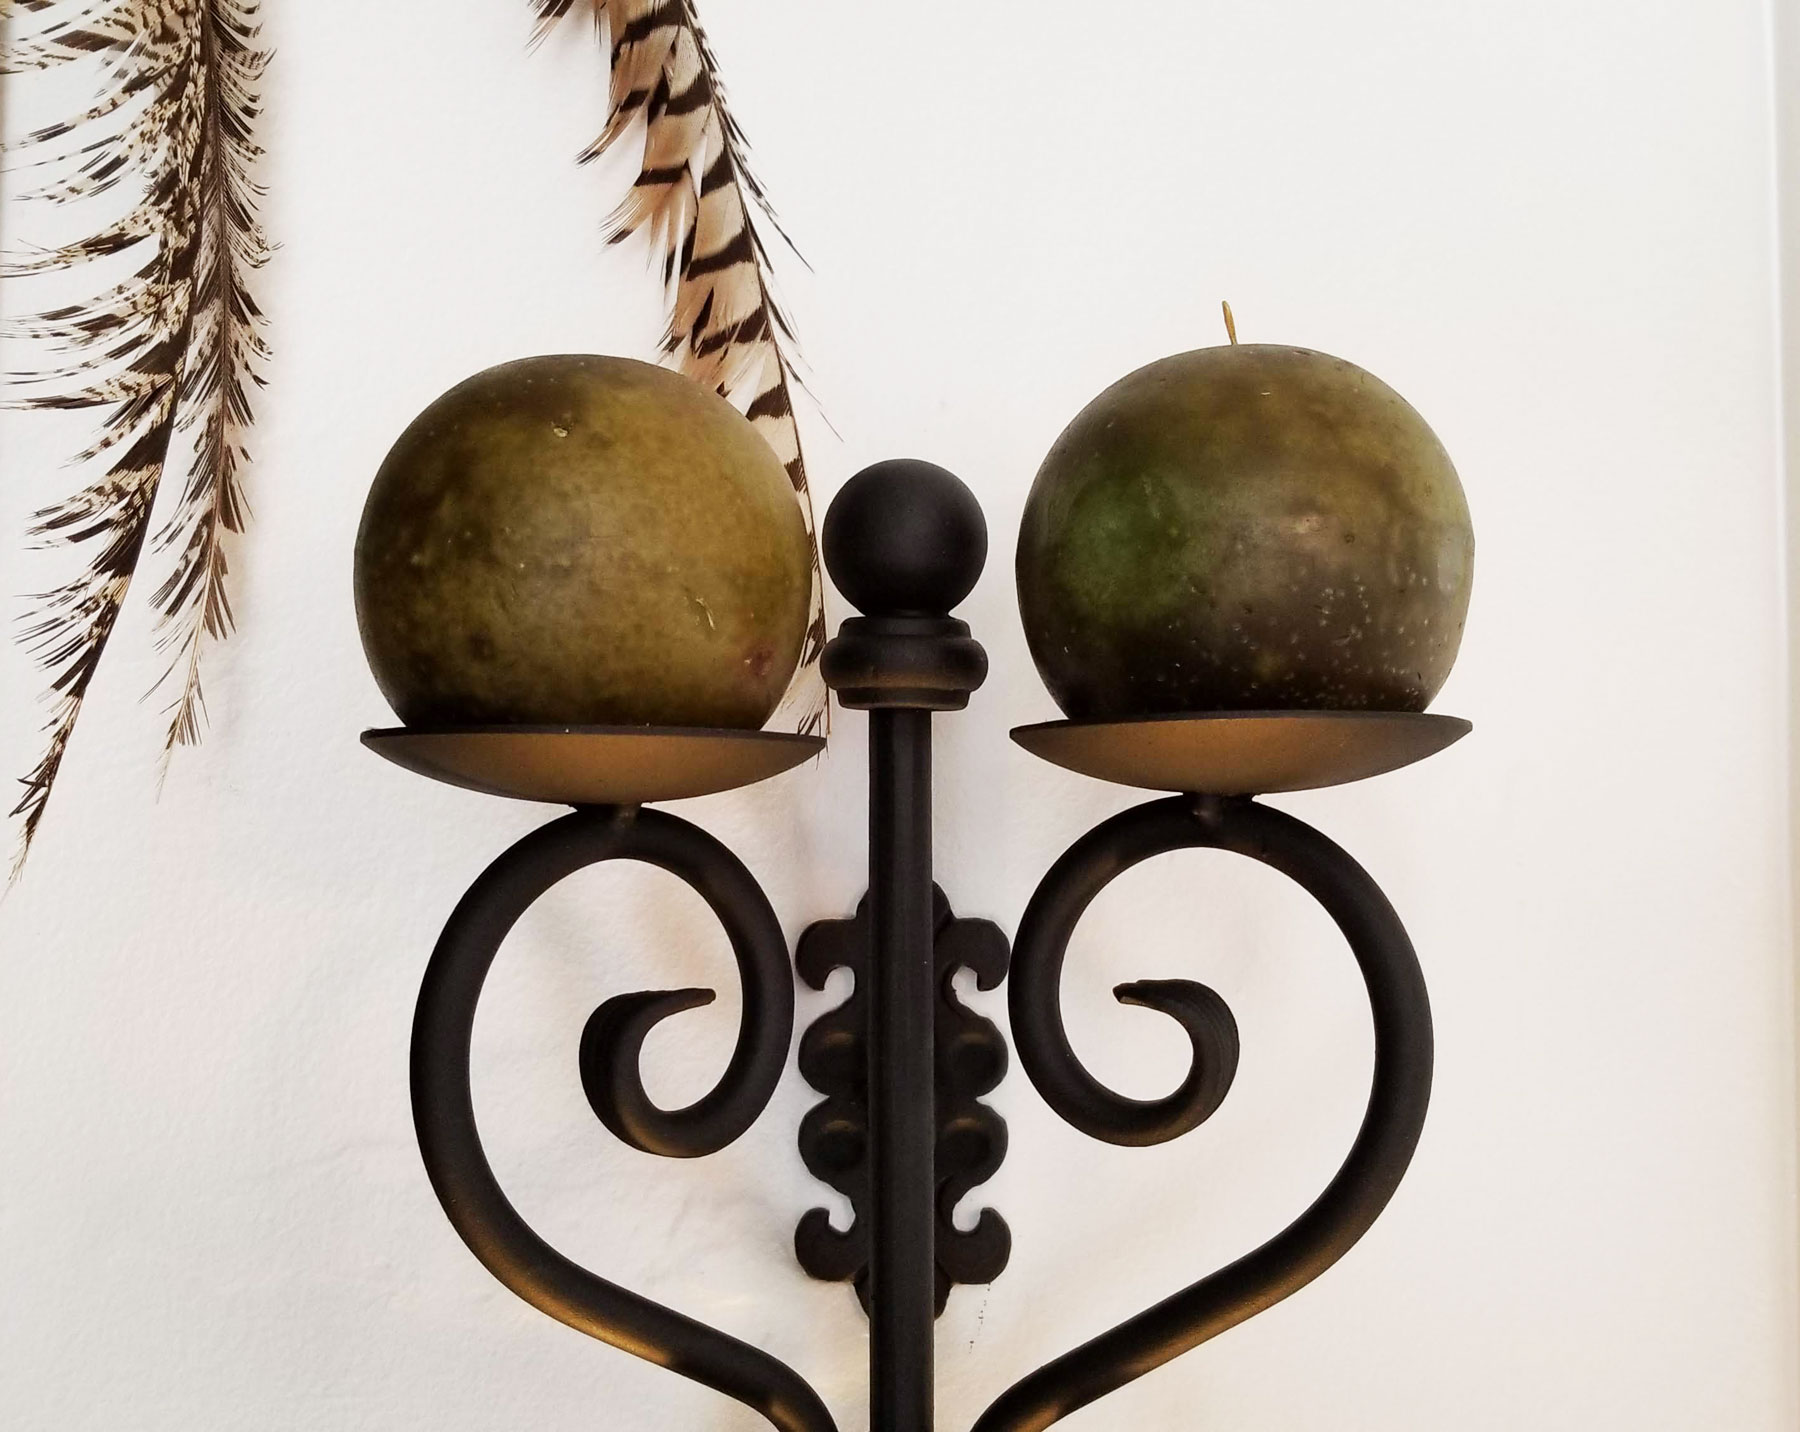 Wrought Iron Wall Sconce-Unique Craftsmanship in Handmade ... on Wrought Iron Outdoor Candle Sconces id=25490